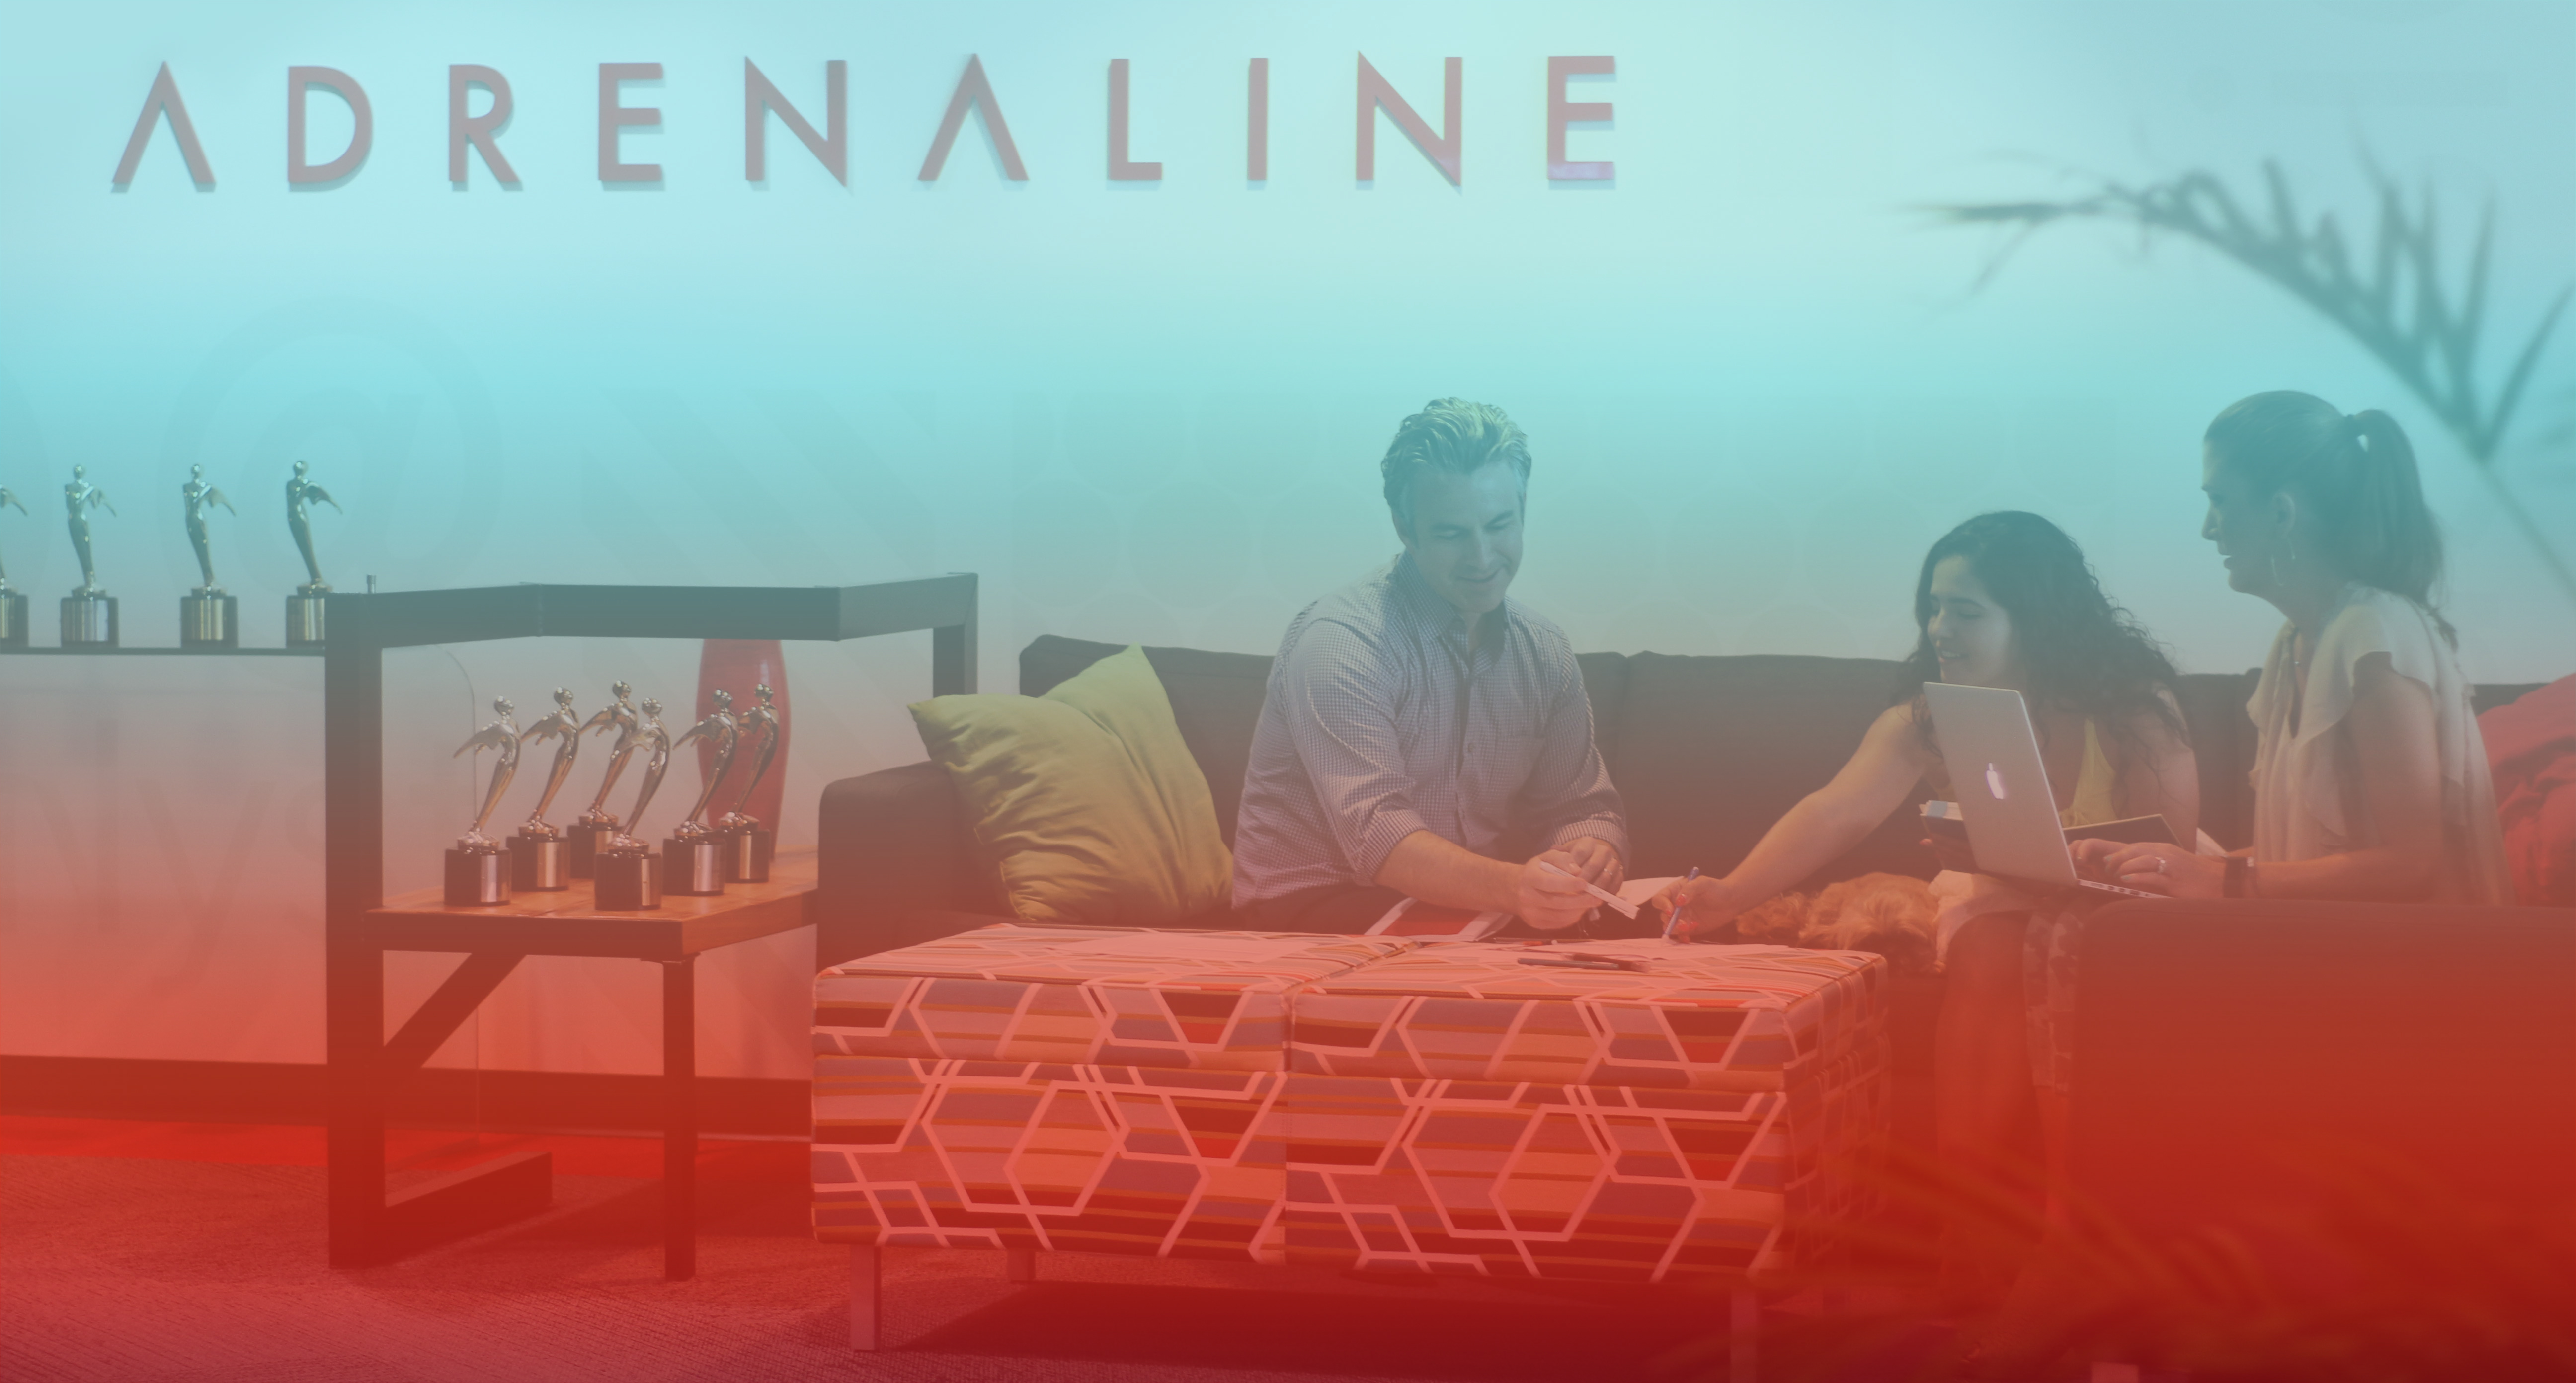 Adrenaline group: creativity and features